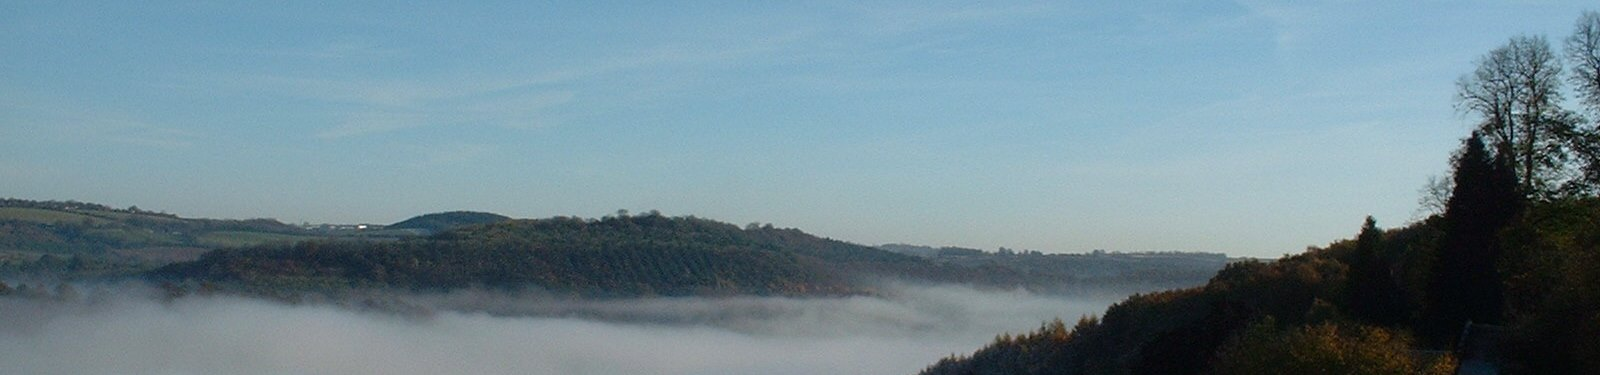 Mist rising in the Wye Valley